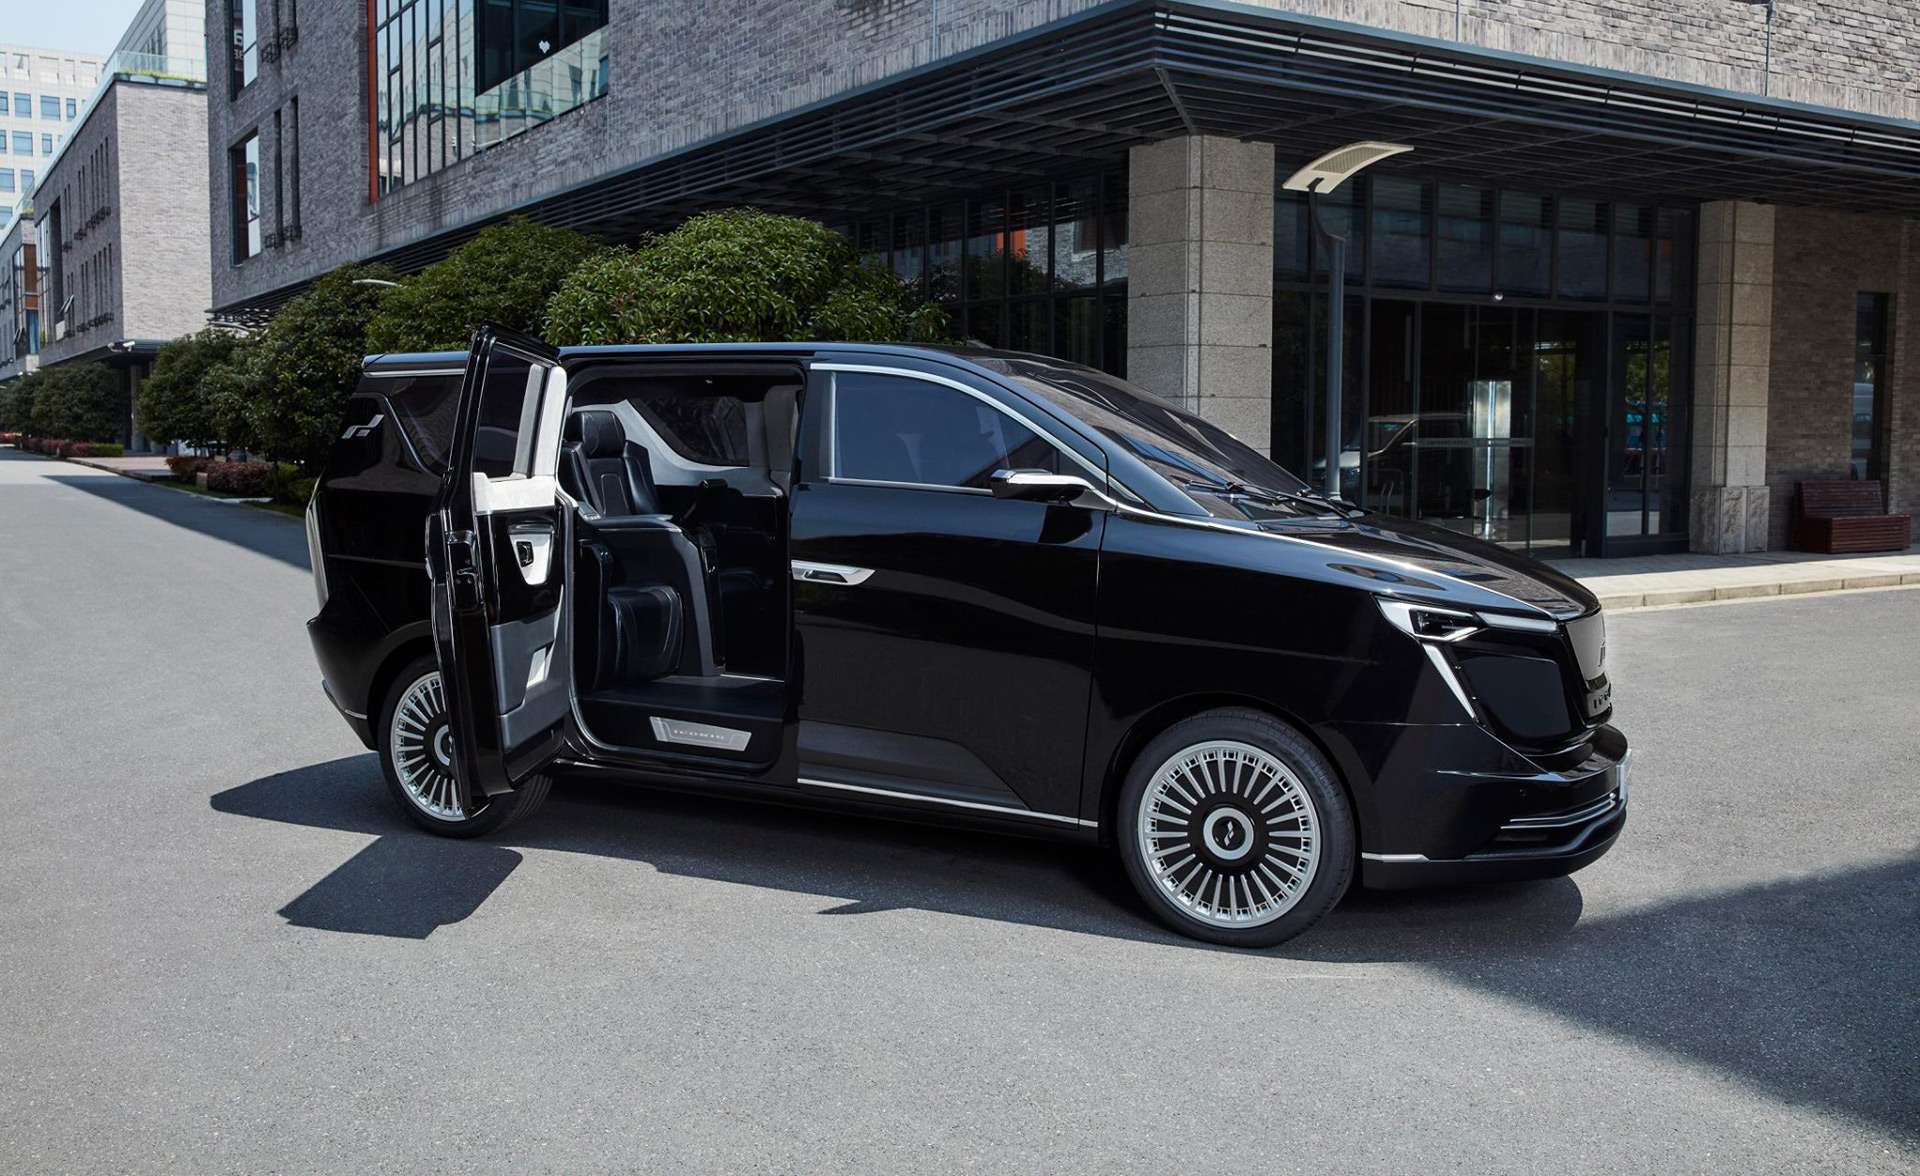 NEVS to develop electric cars with Chinese automaker Iconiq